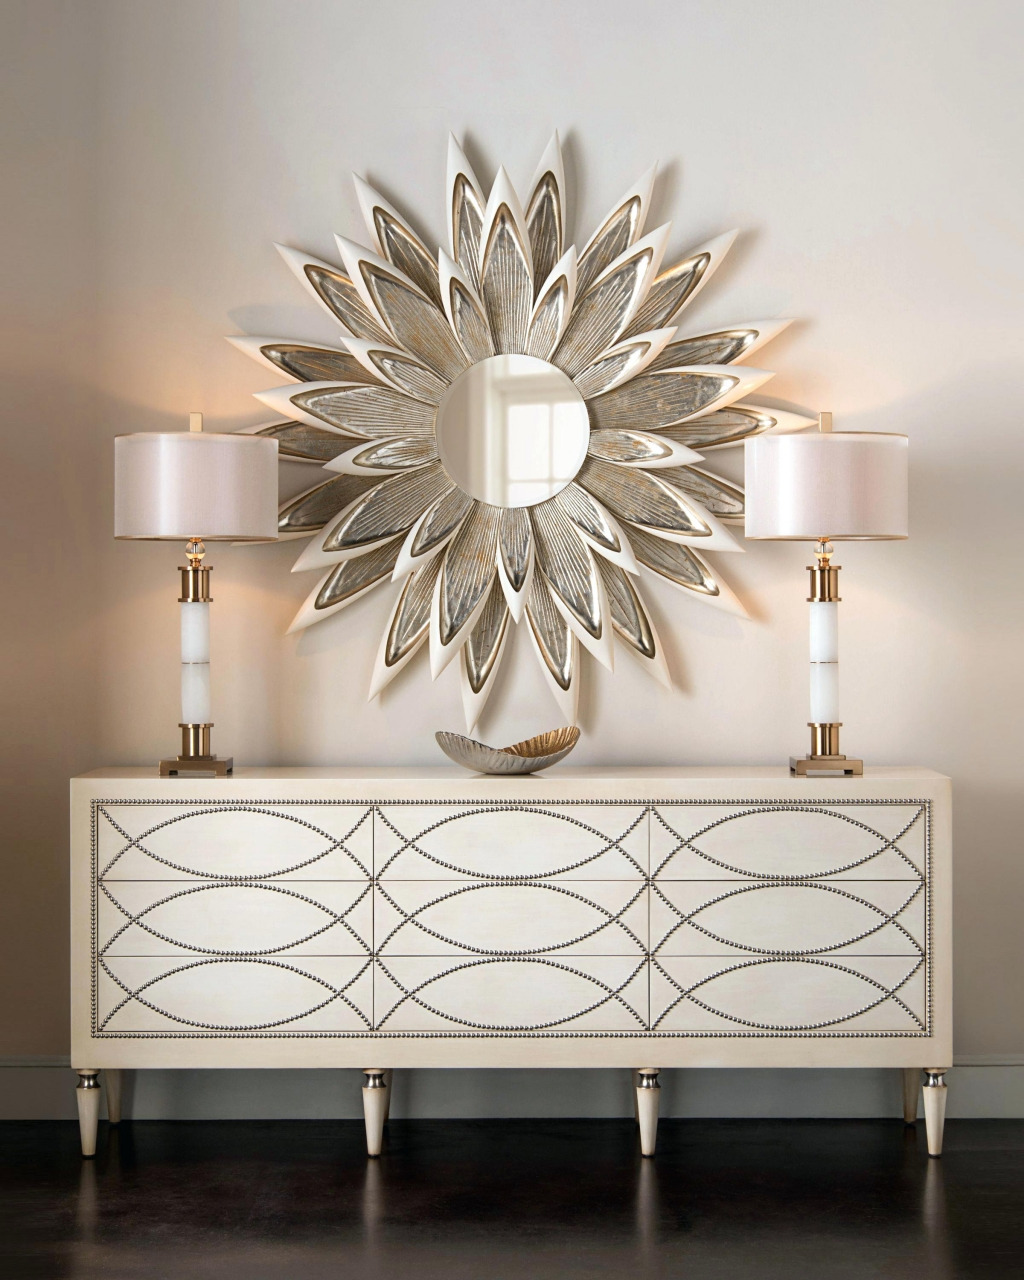 new decorative wall mirror perfect for living room jeffsbakery chic